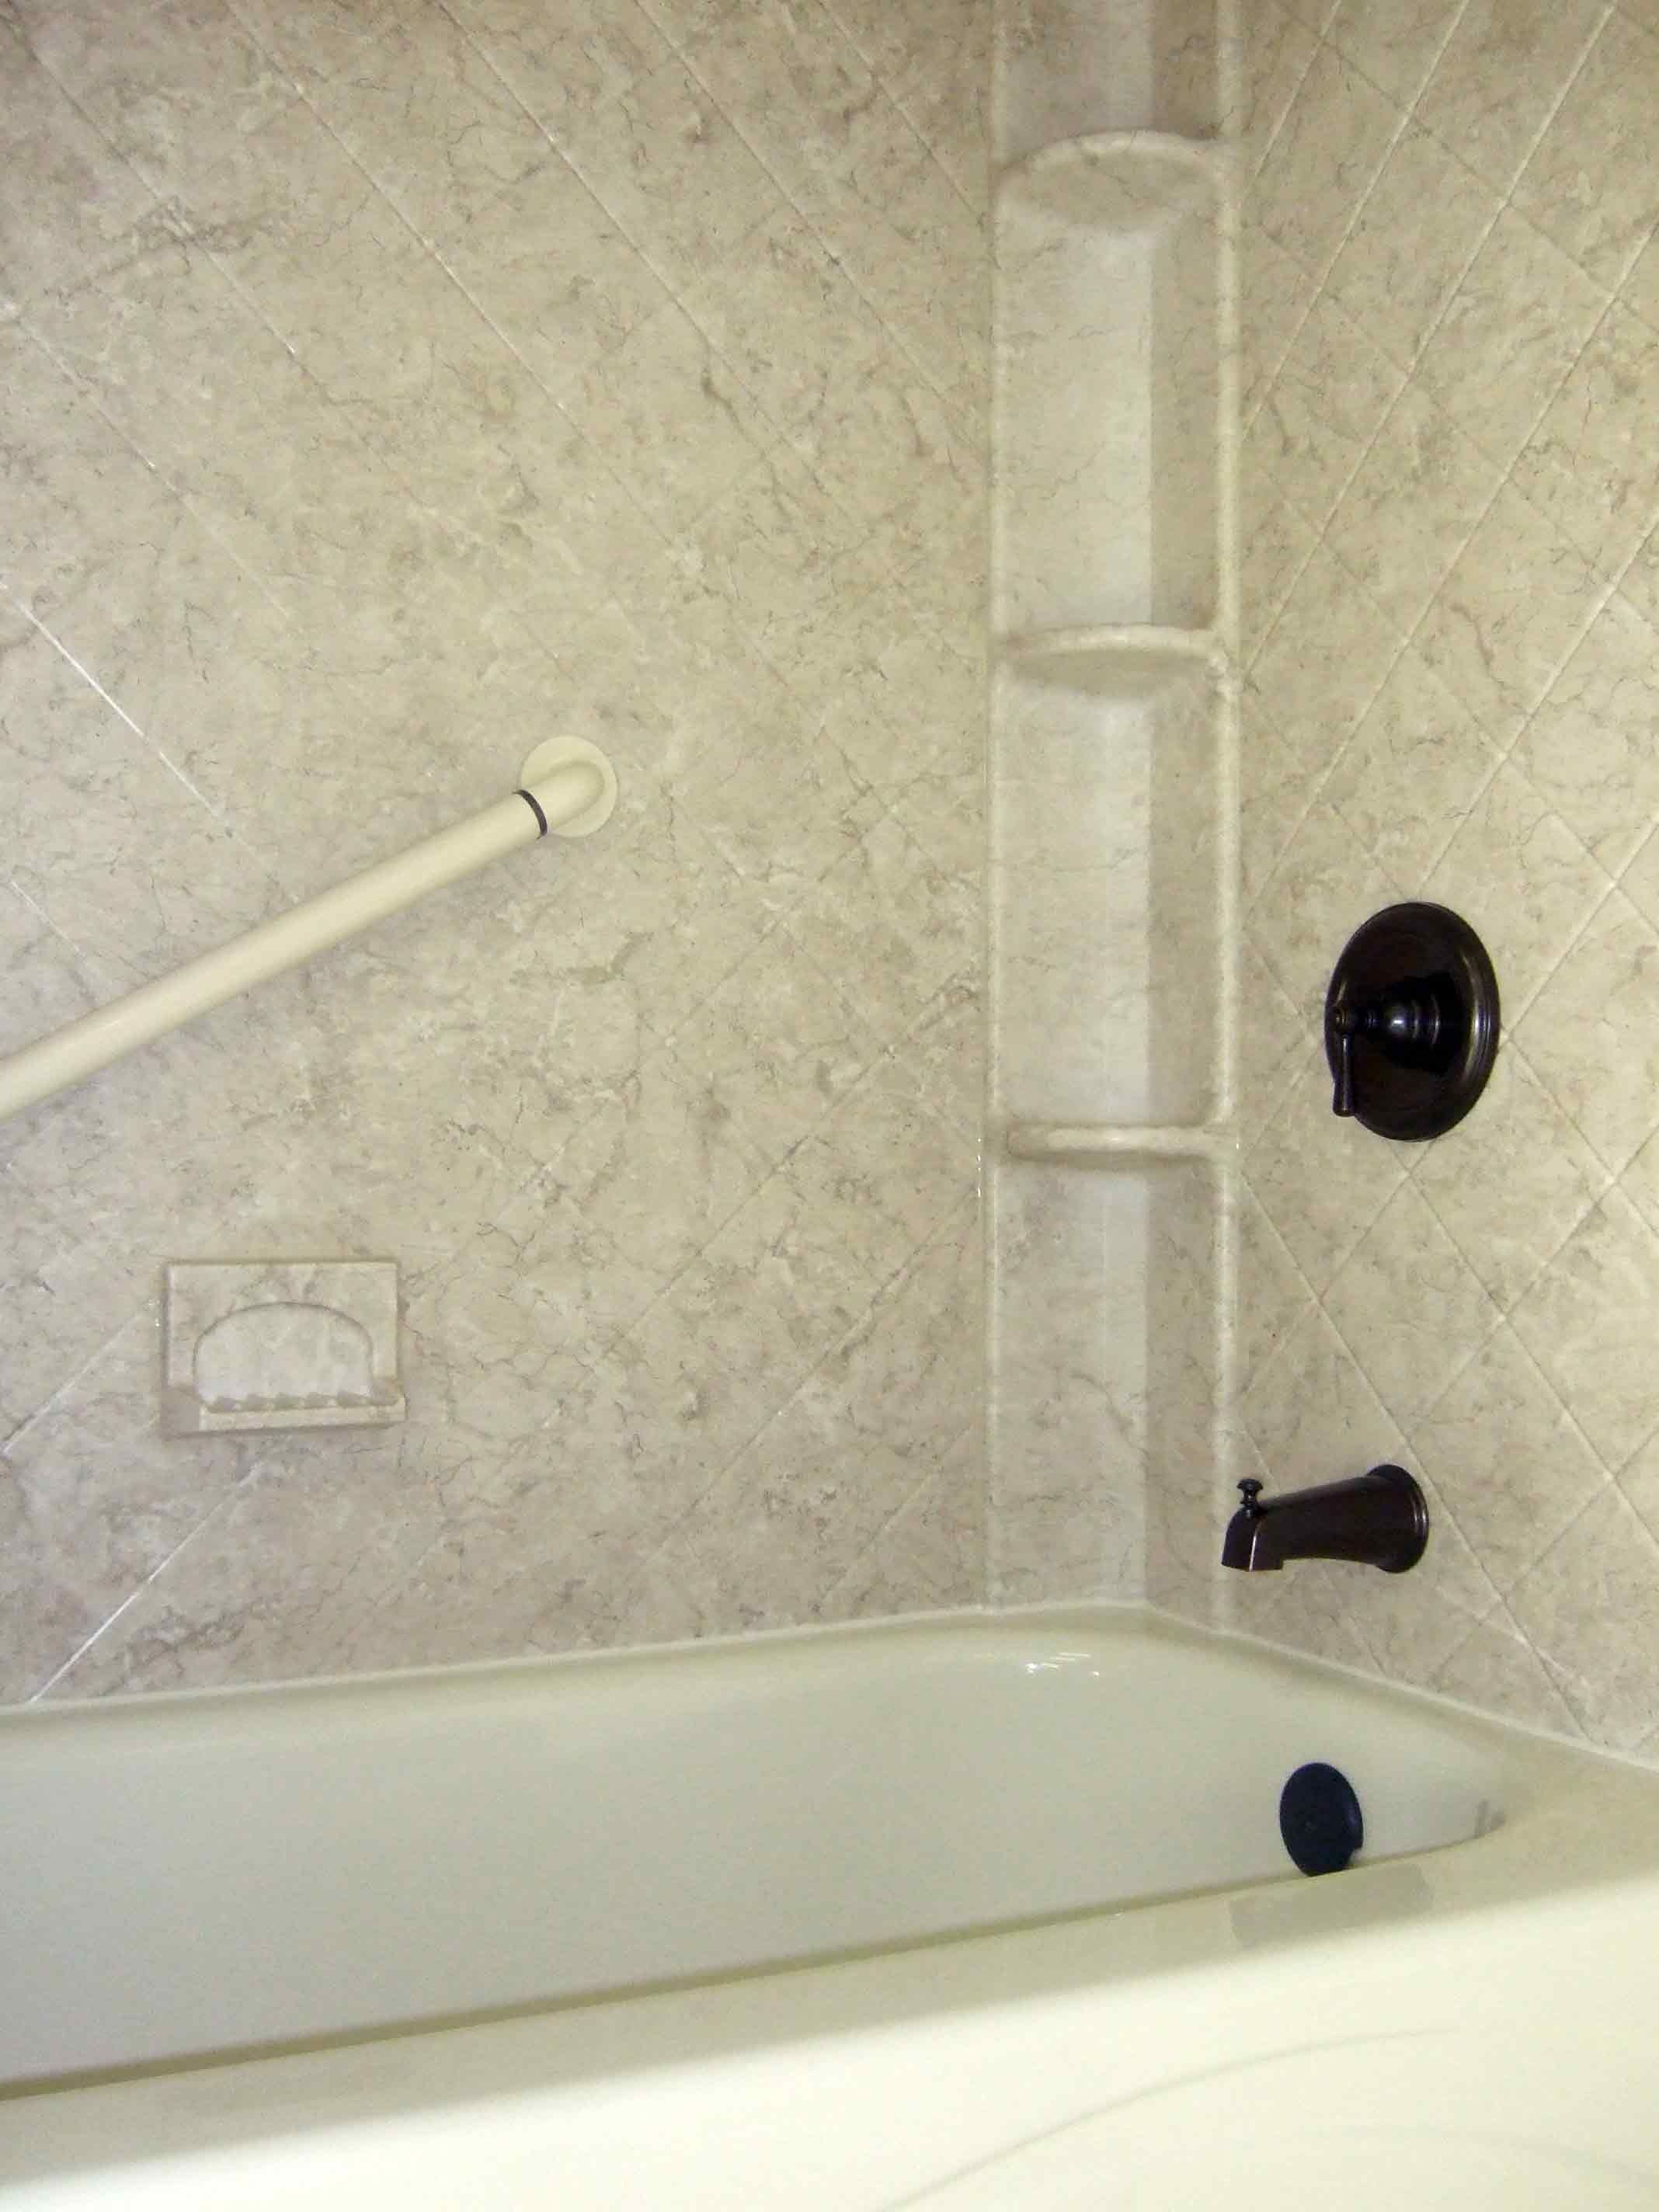 Acrylic shower walls with Breccia pattern and shower caddy | Shower ...